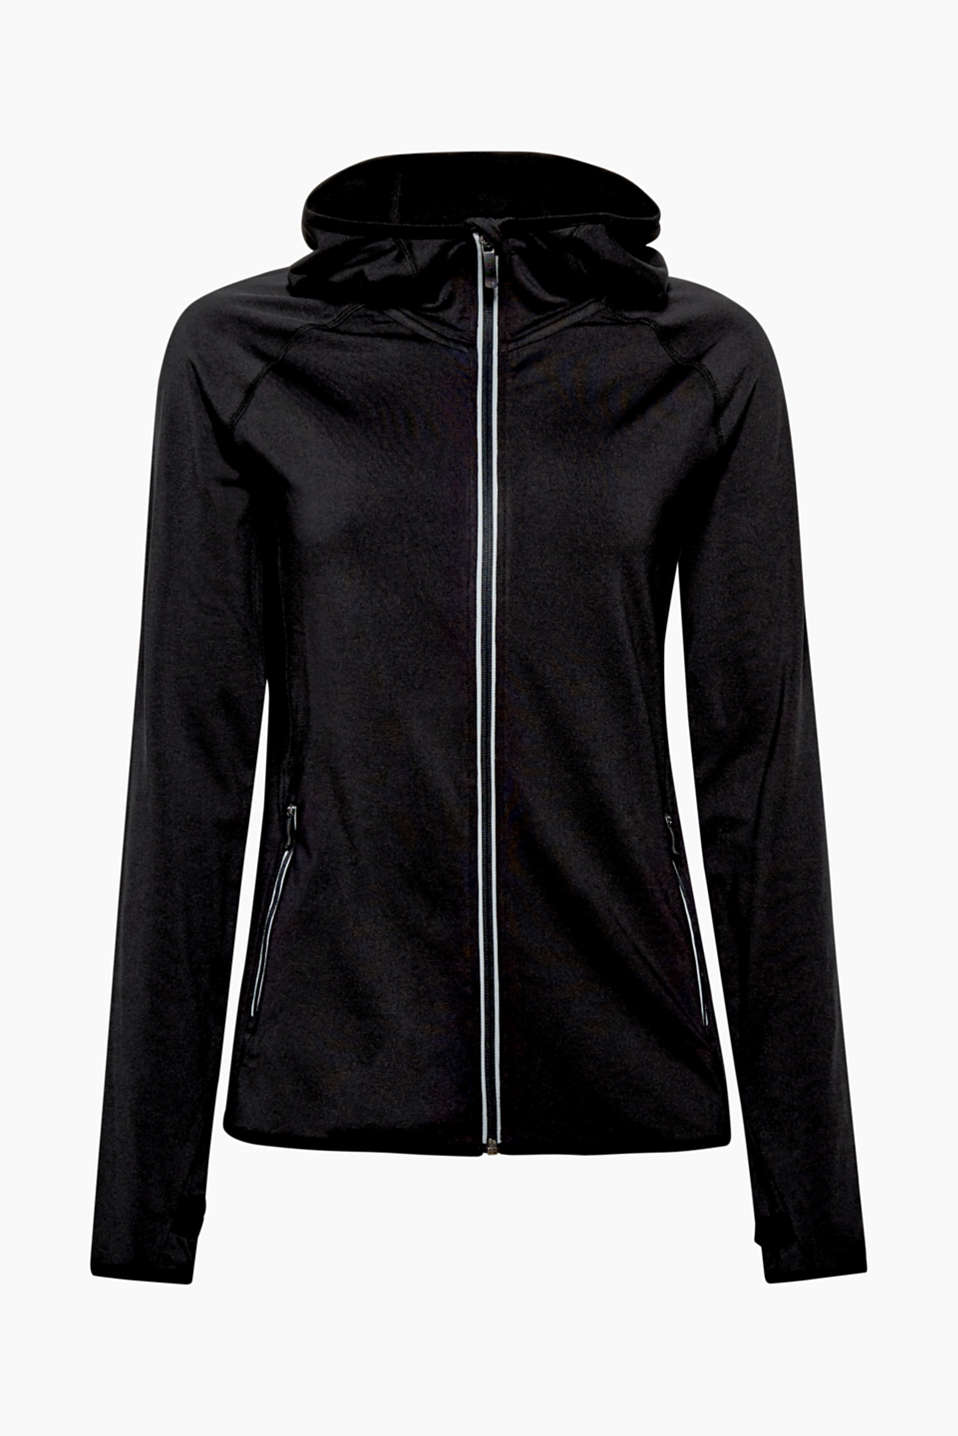 This fleece-lined hooded cardigan with an E-DRY finish is your go-to garment for all things sport.